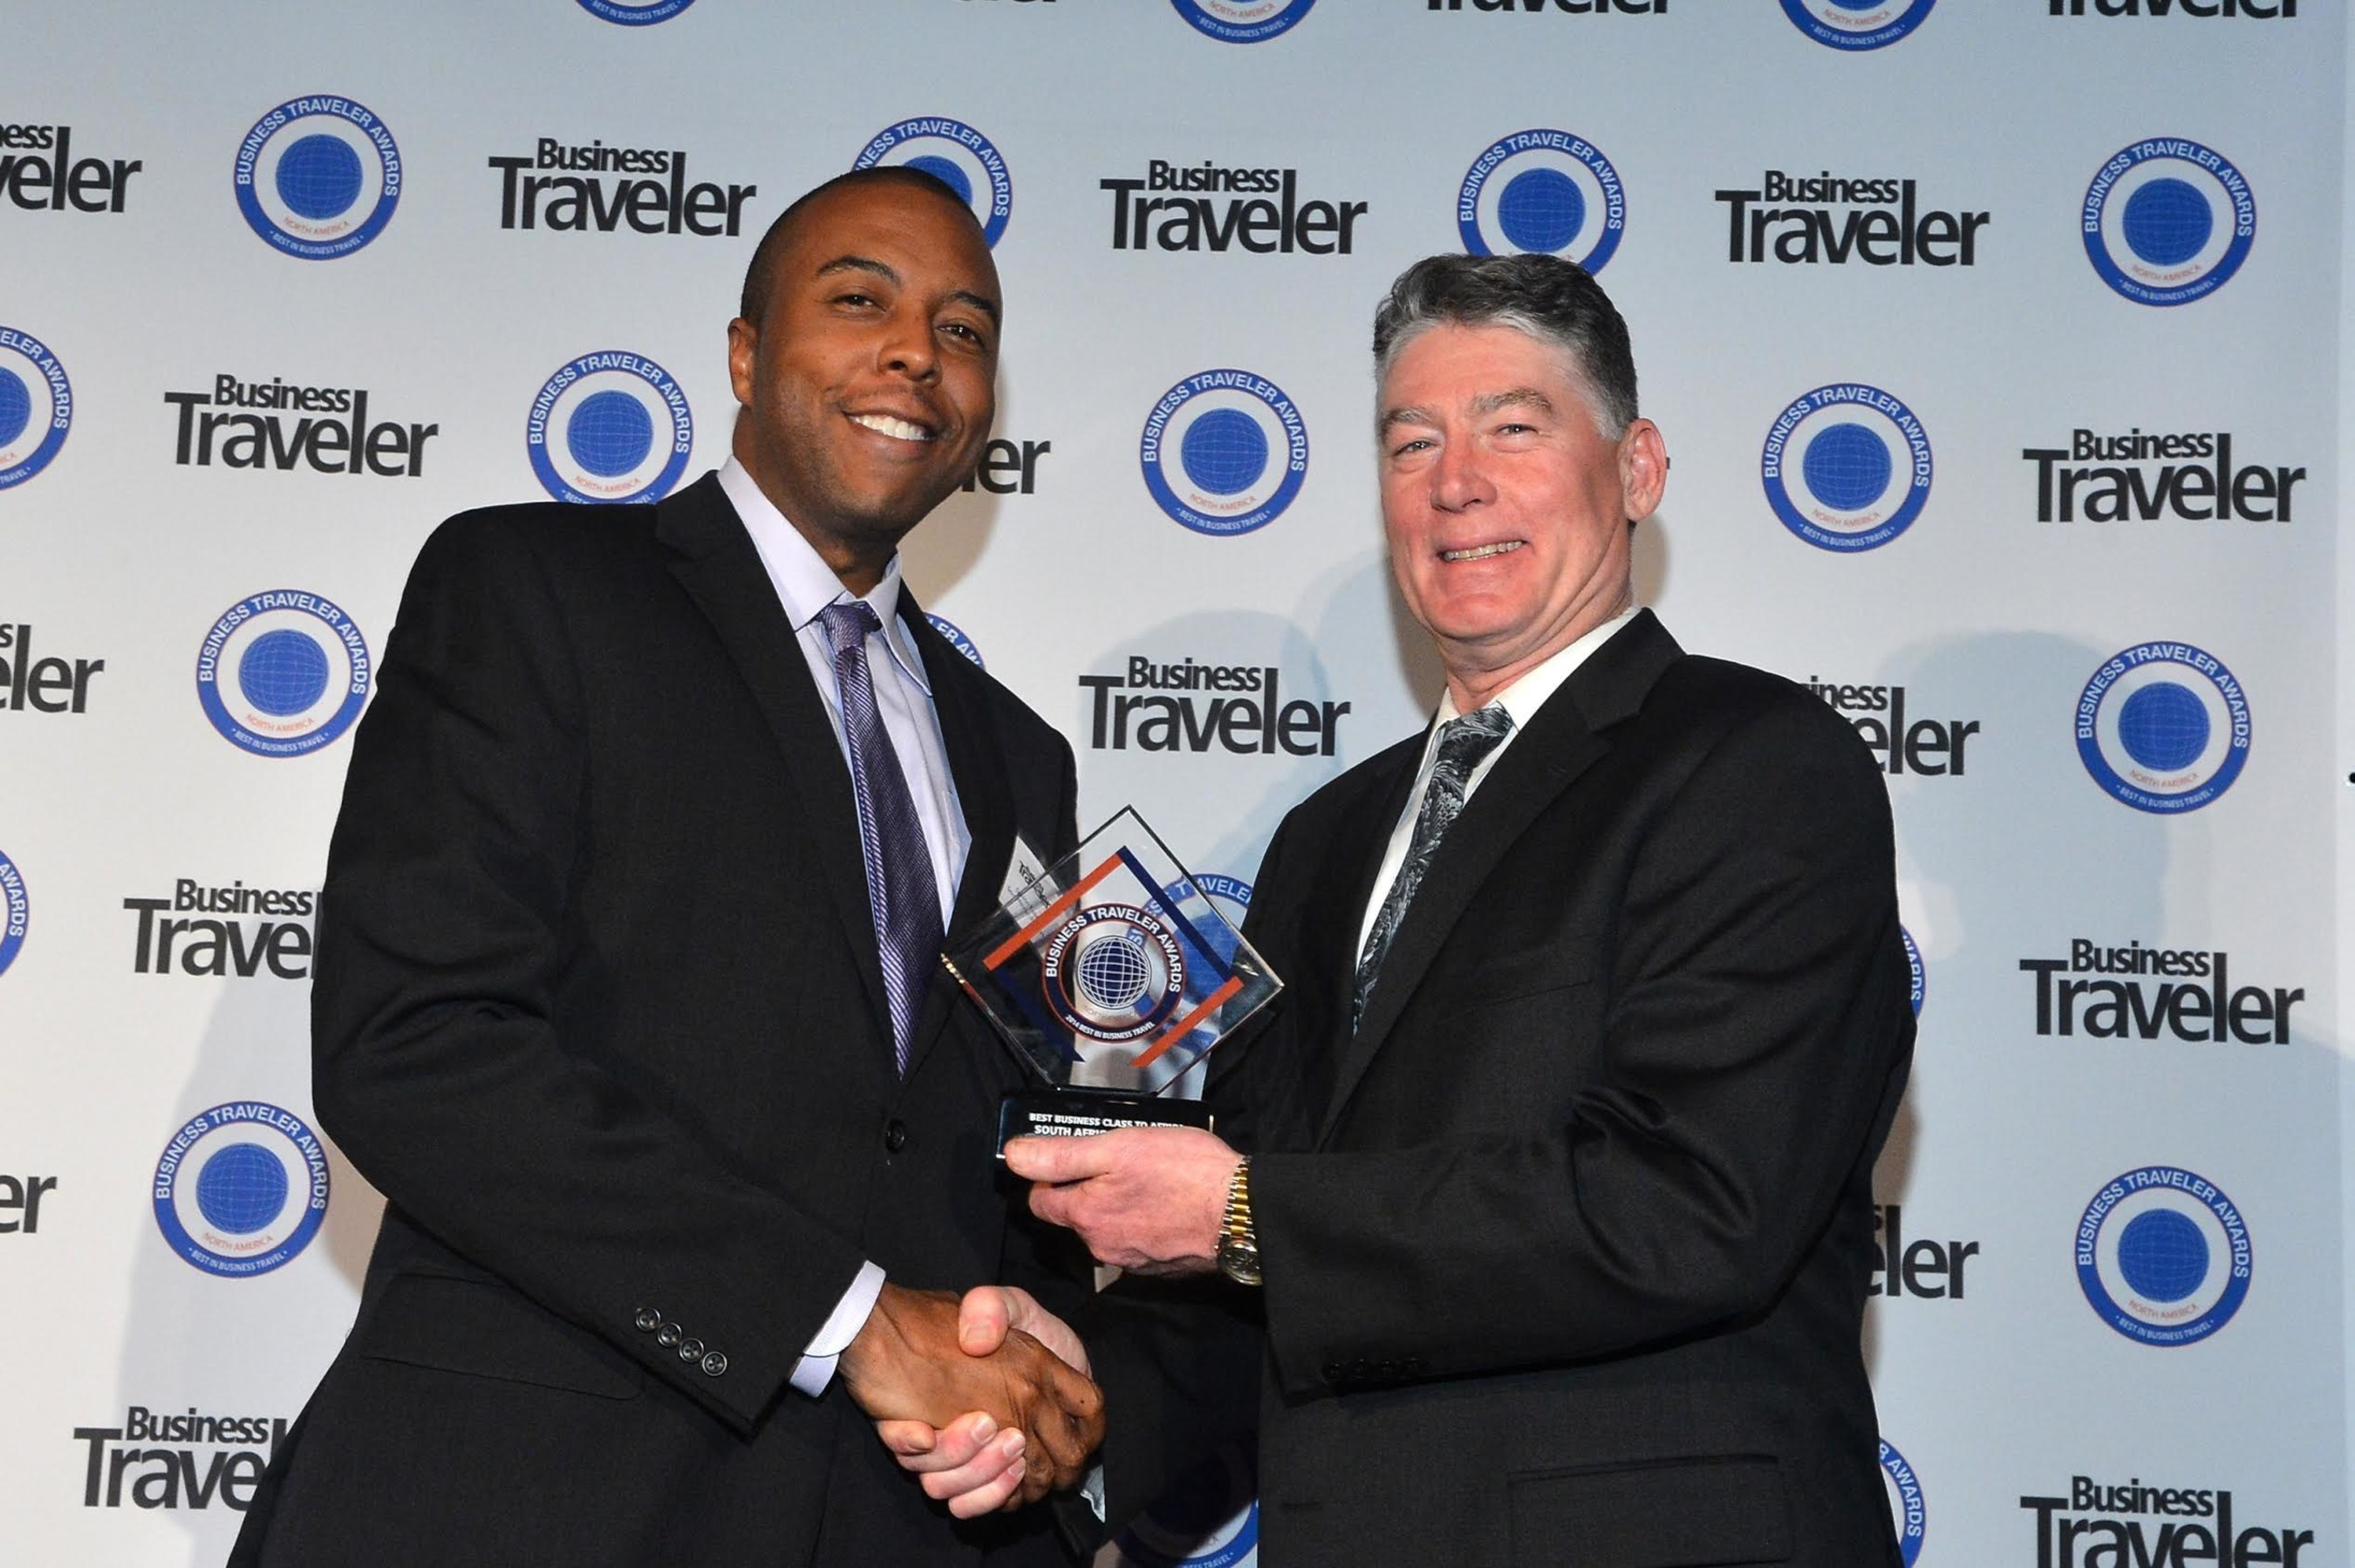 Damion Rose, Manager Marketing Promotions for South African Airways receiving the awards from Jerry Allison, Group Publisher at Business Traveler.